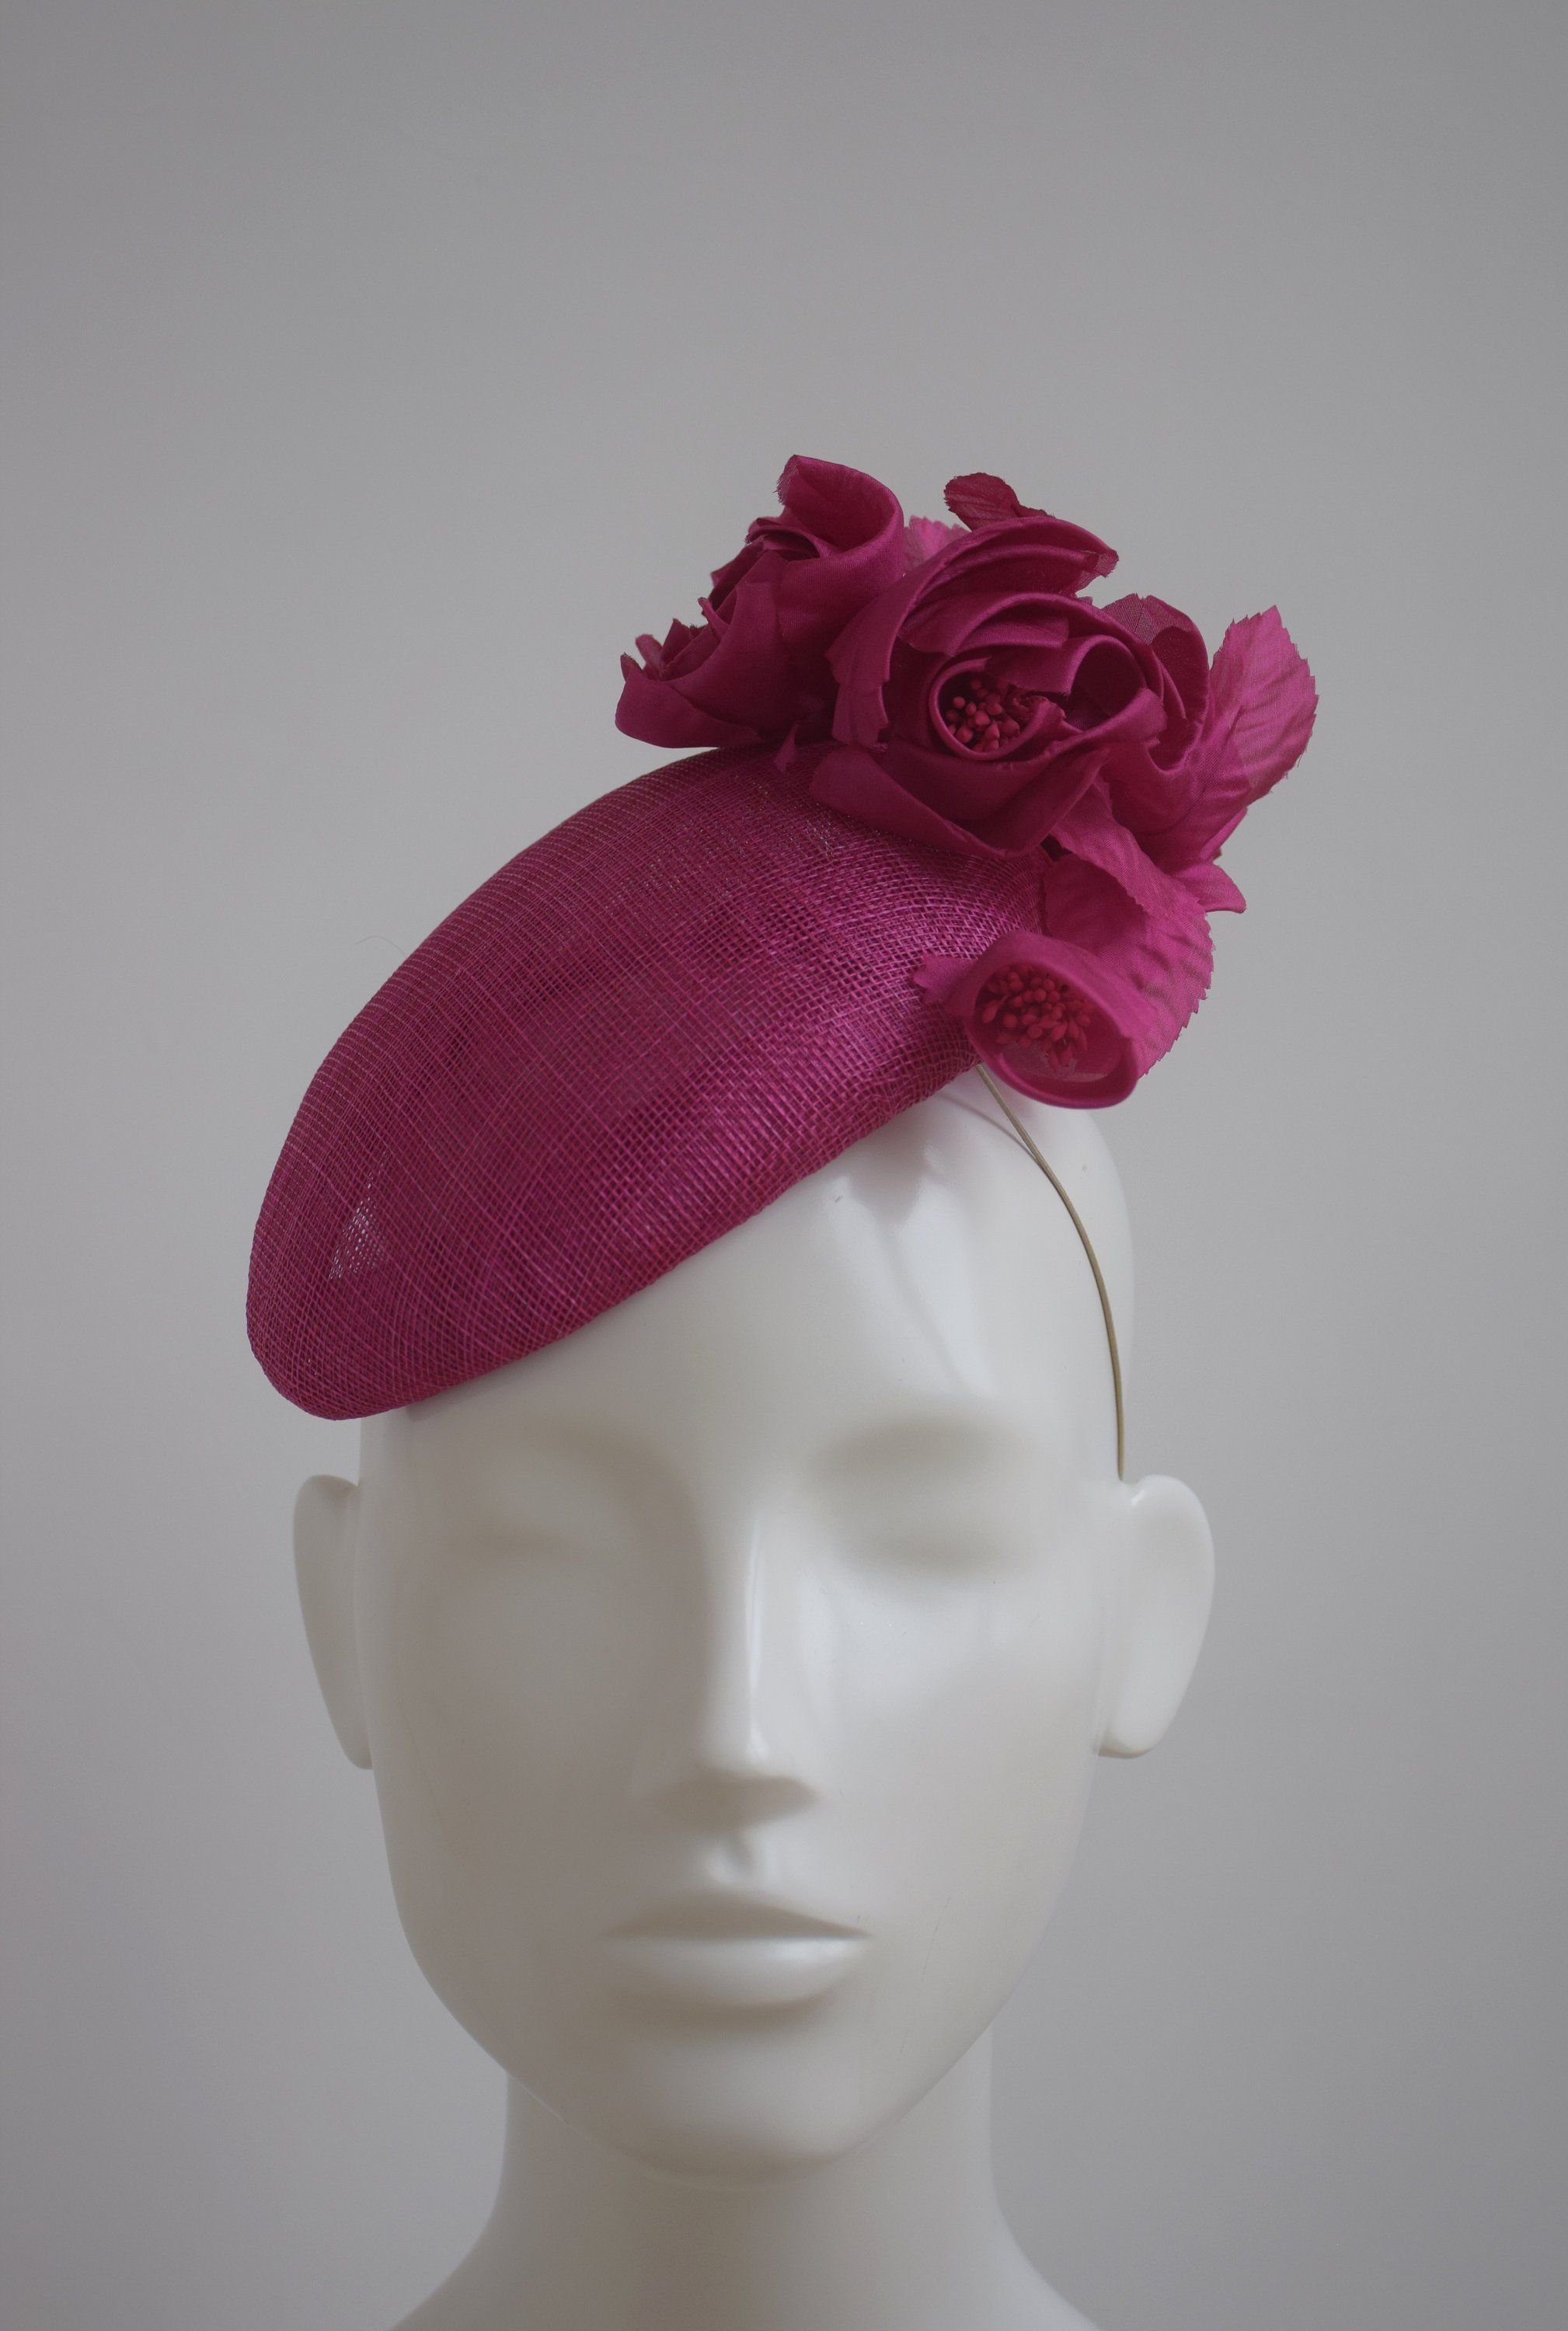 Pink Hatinator Cerise Fascinator Dark Percher Hat Occasion Tail Wedding Ascot Las Day By